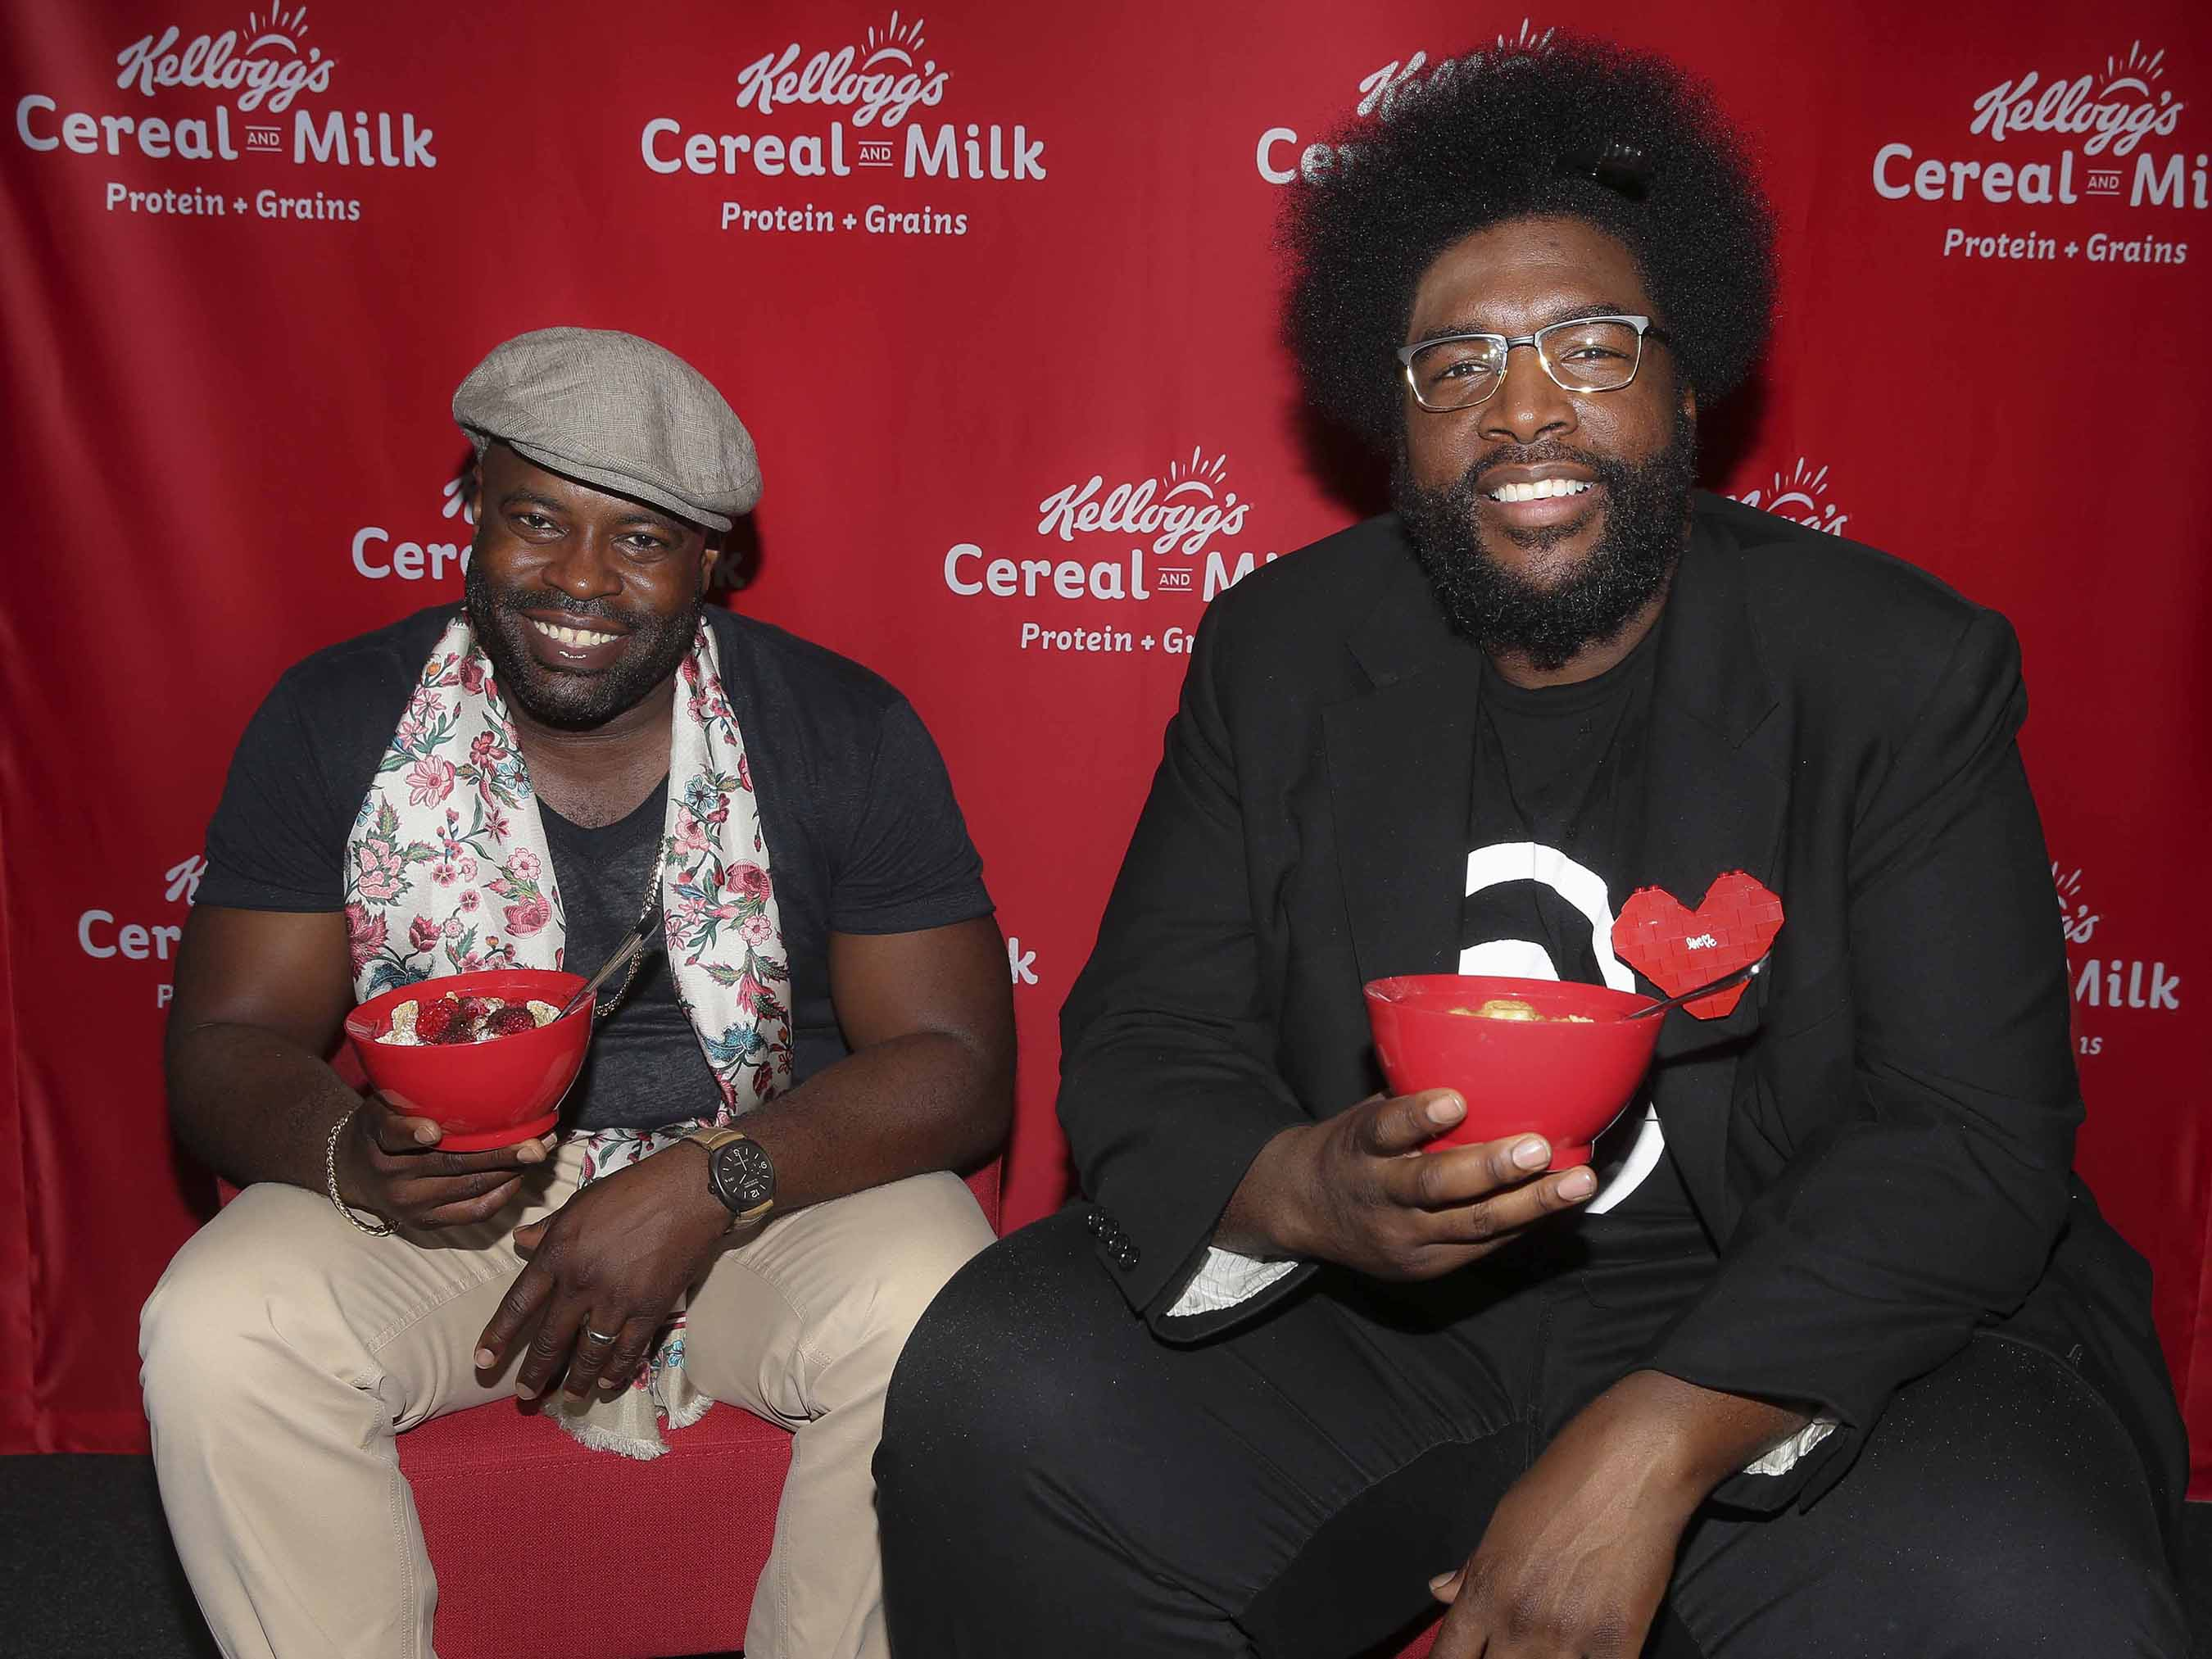 Black Thought and ?uestlove, Grammy Award-winning artists and members of The Roots, at the Kellogg's Recharge Bar